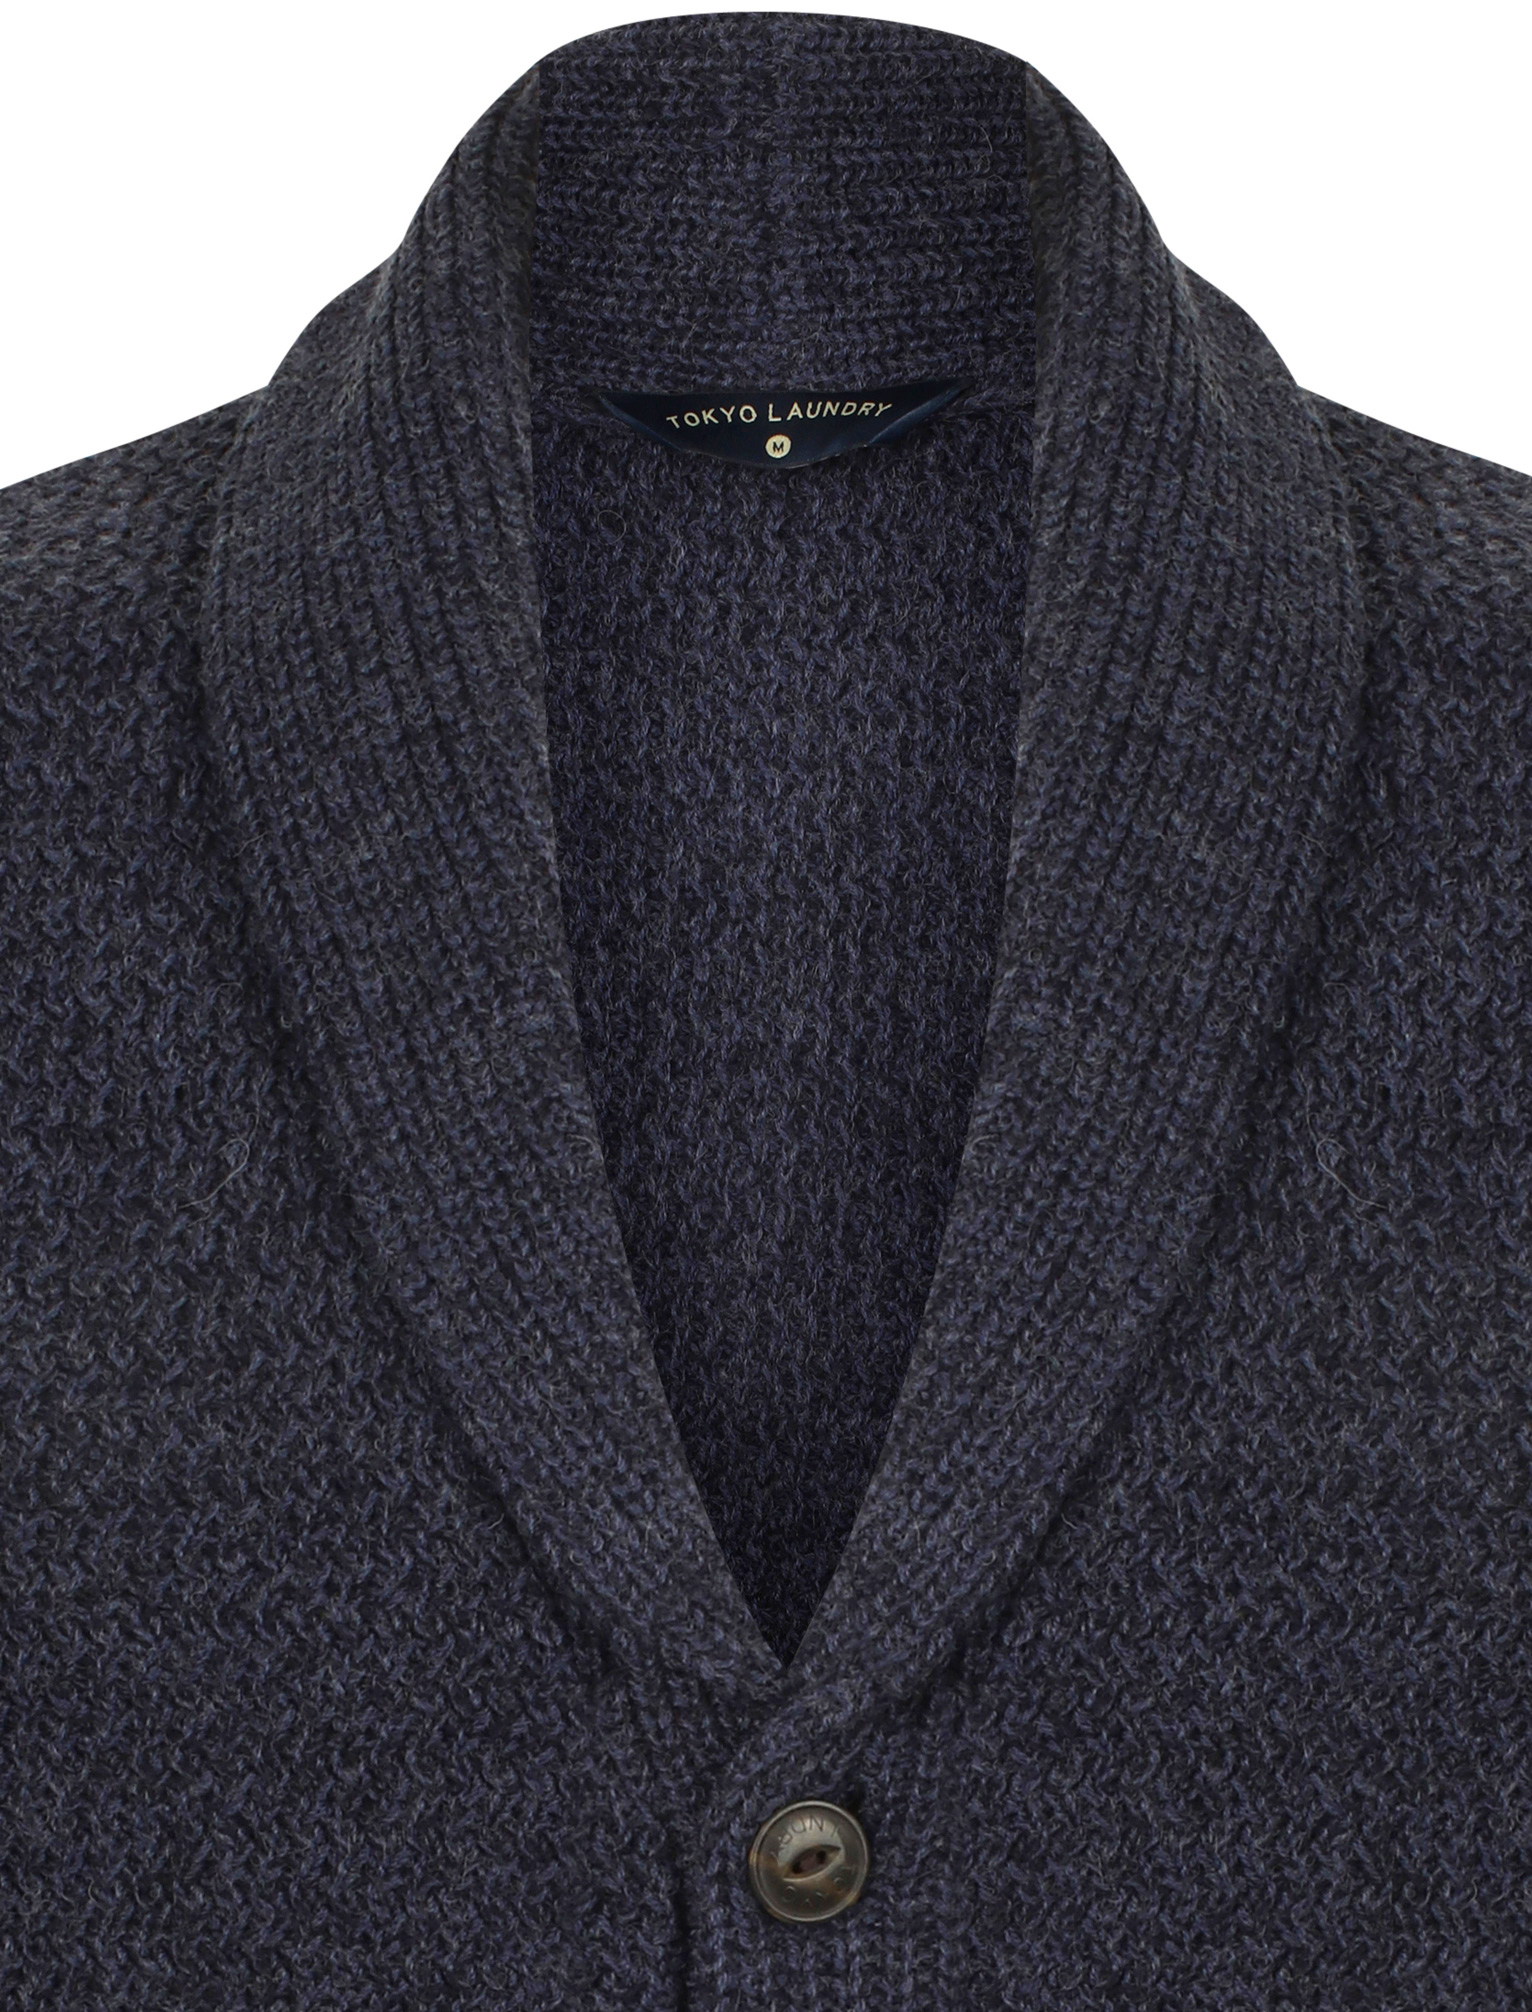 Tokyo-Laundry-Mens-Cardigan-Shawl-Neck-Long-Sleeve-Wool-Blend-Knitted-Button-Up thumbnail 22